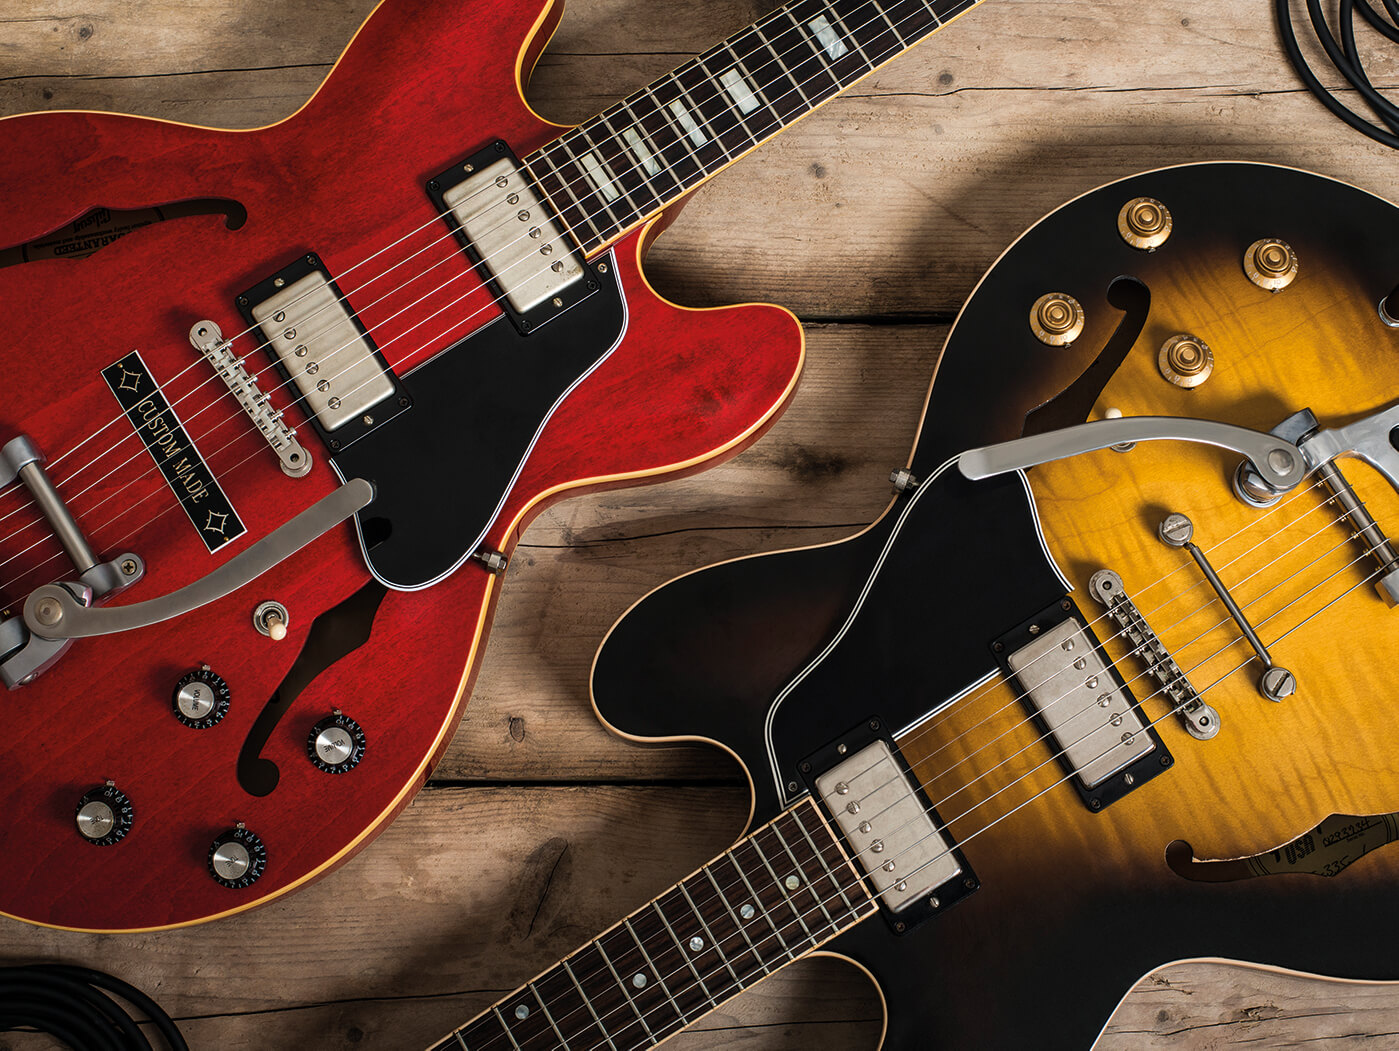 Pair of Gibson ES-335 side by side